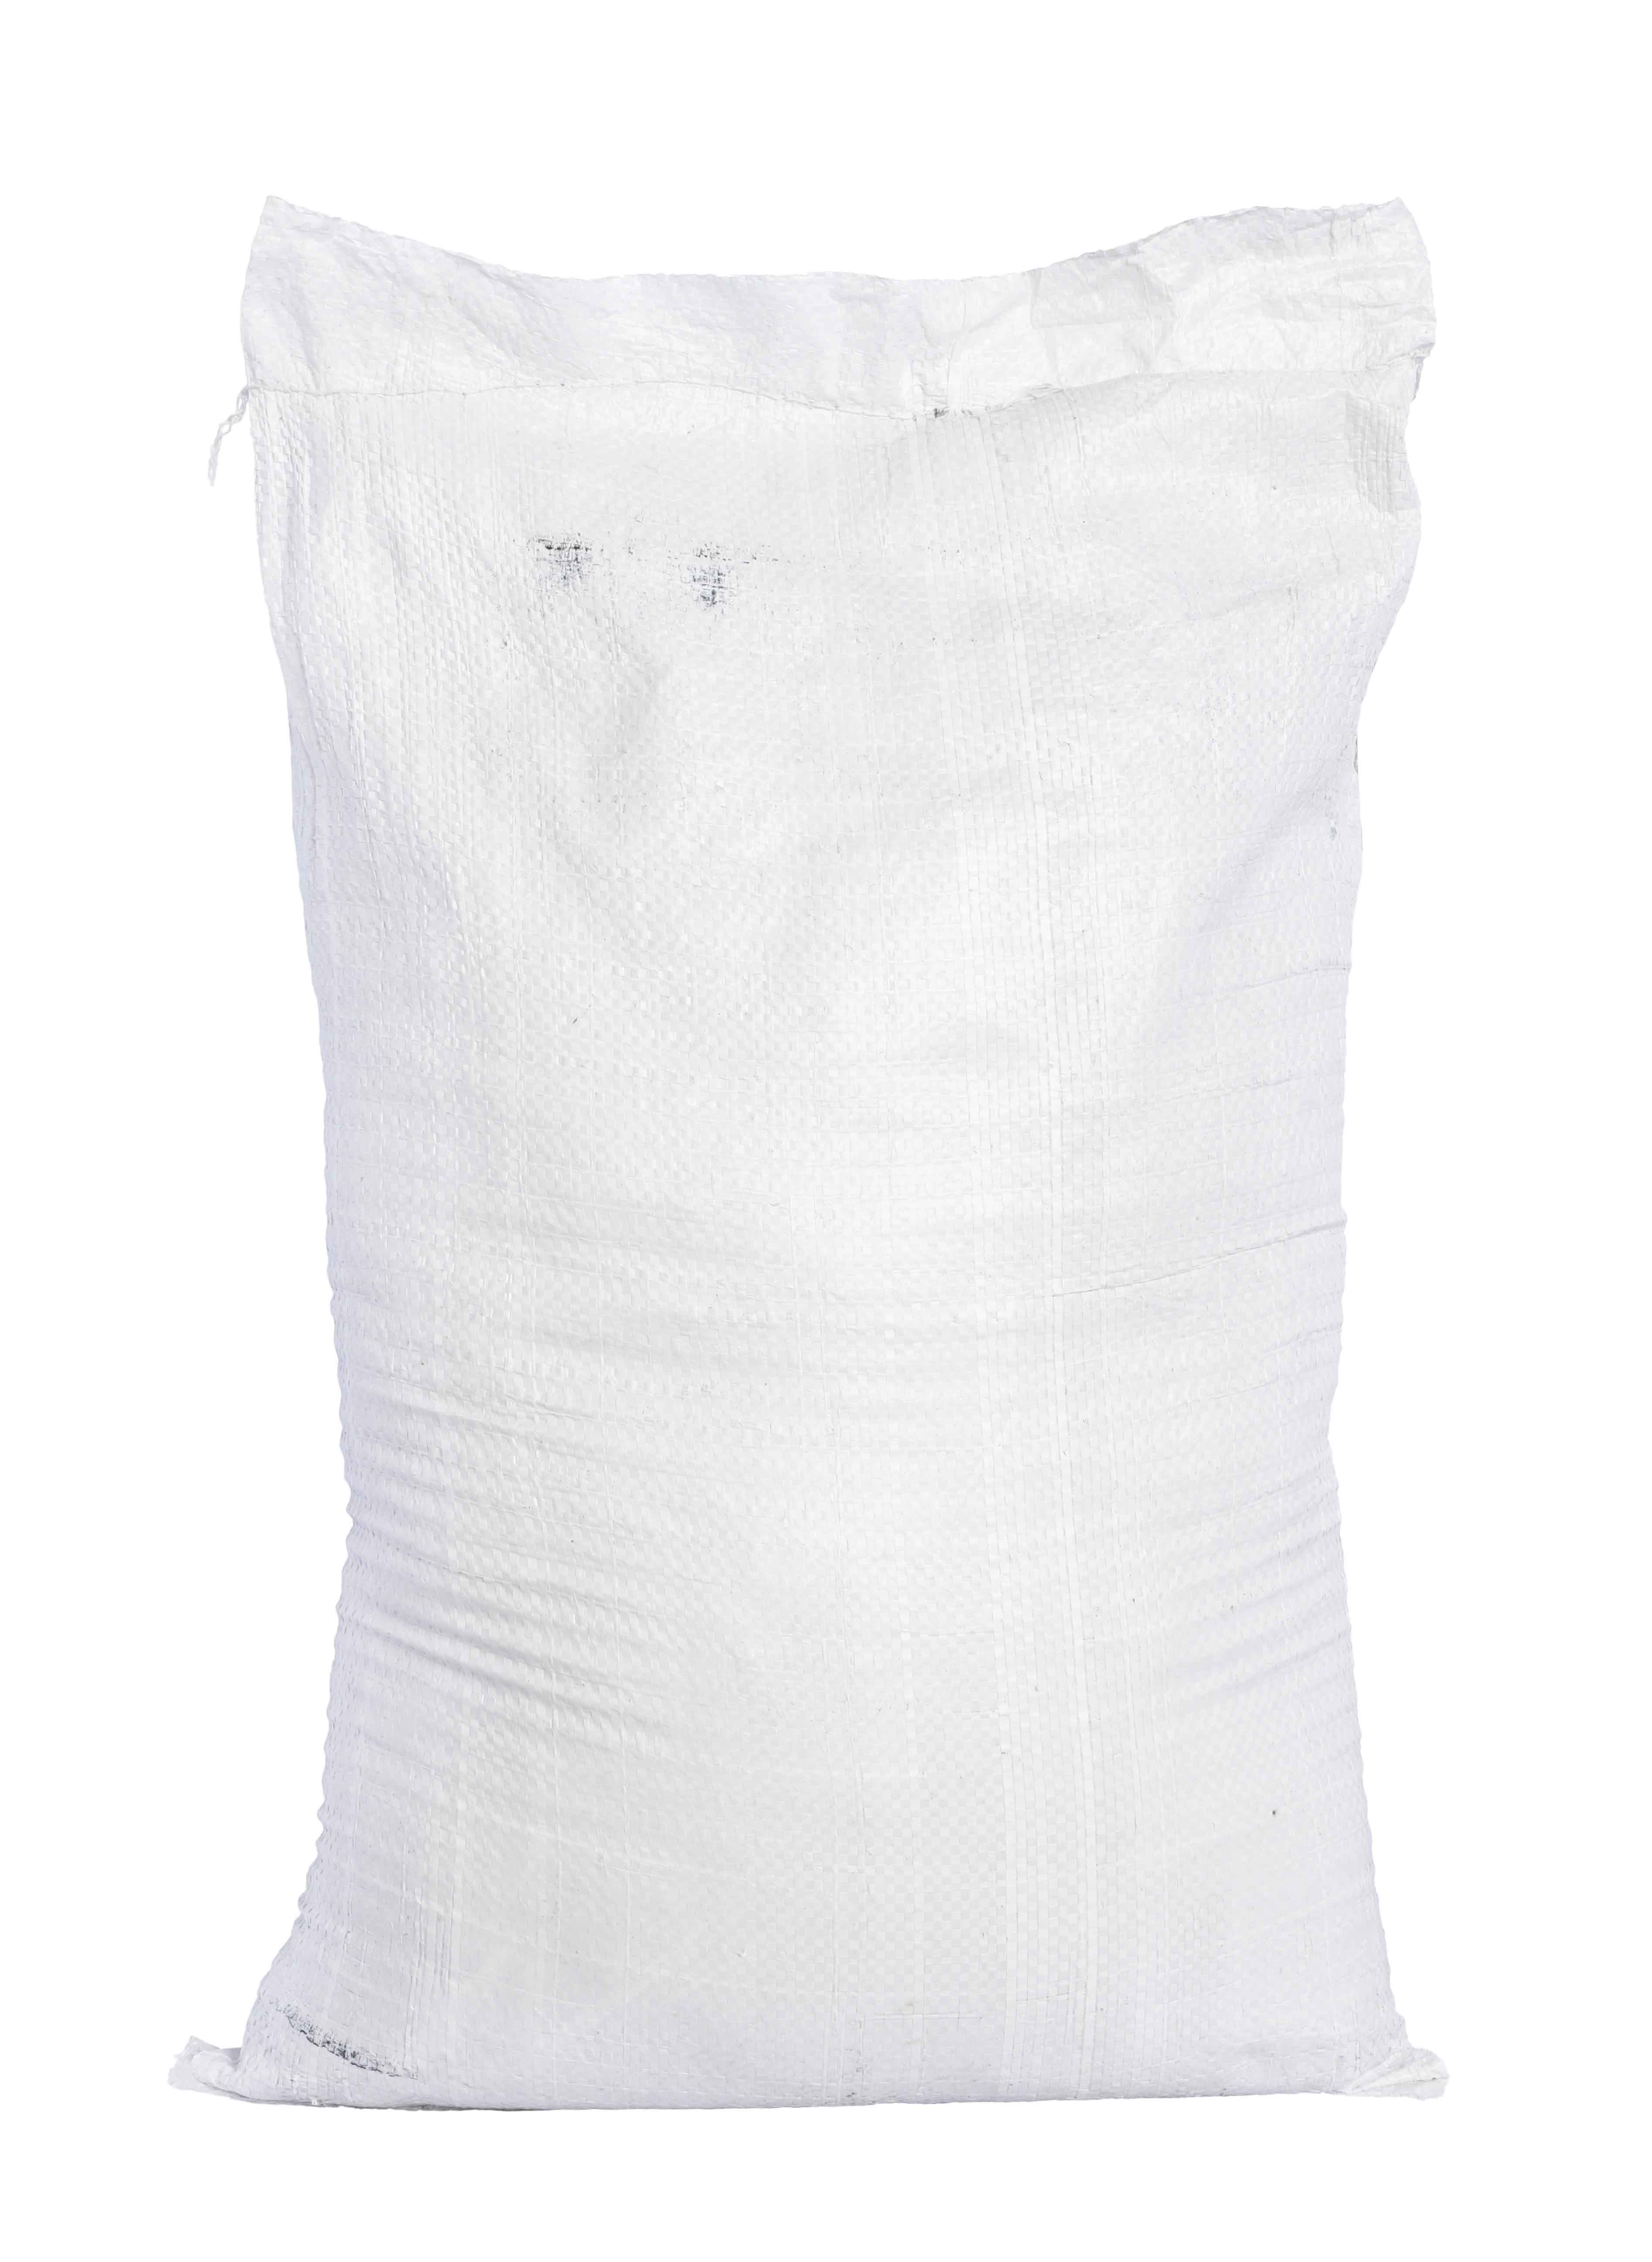 sacks testing - White canvas sack